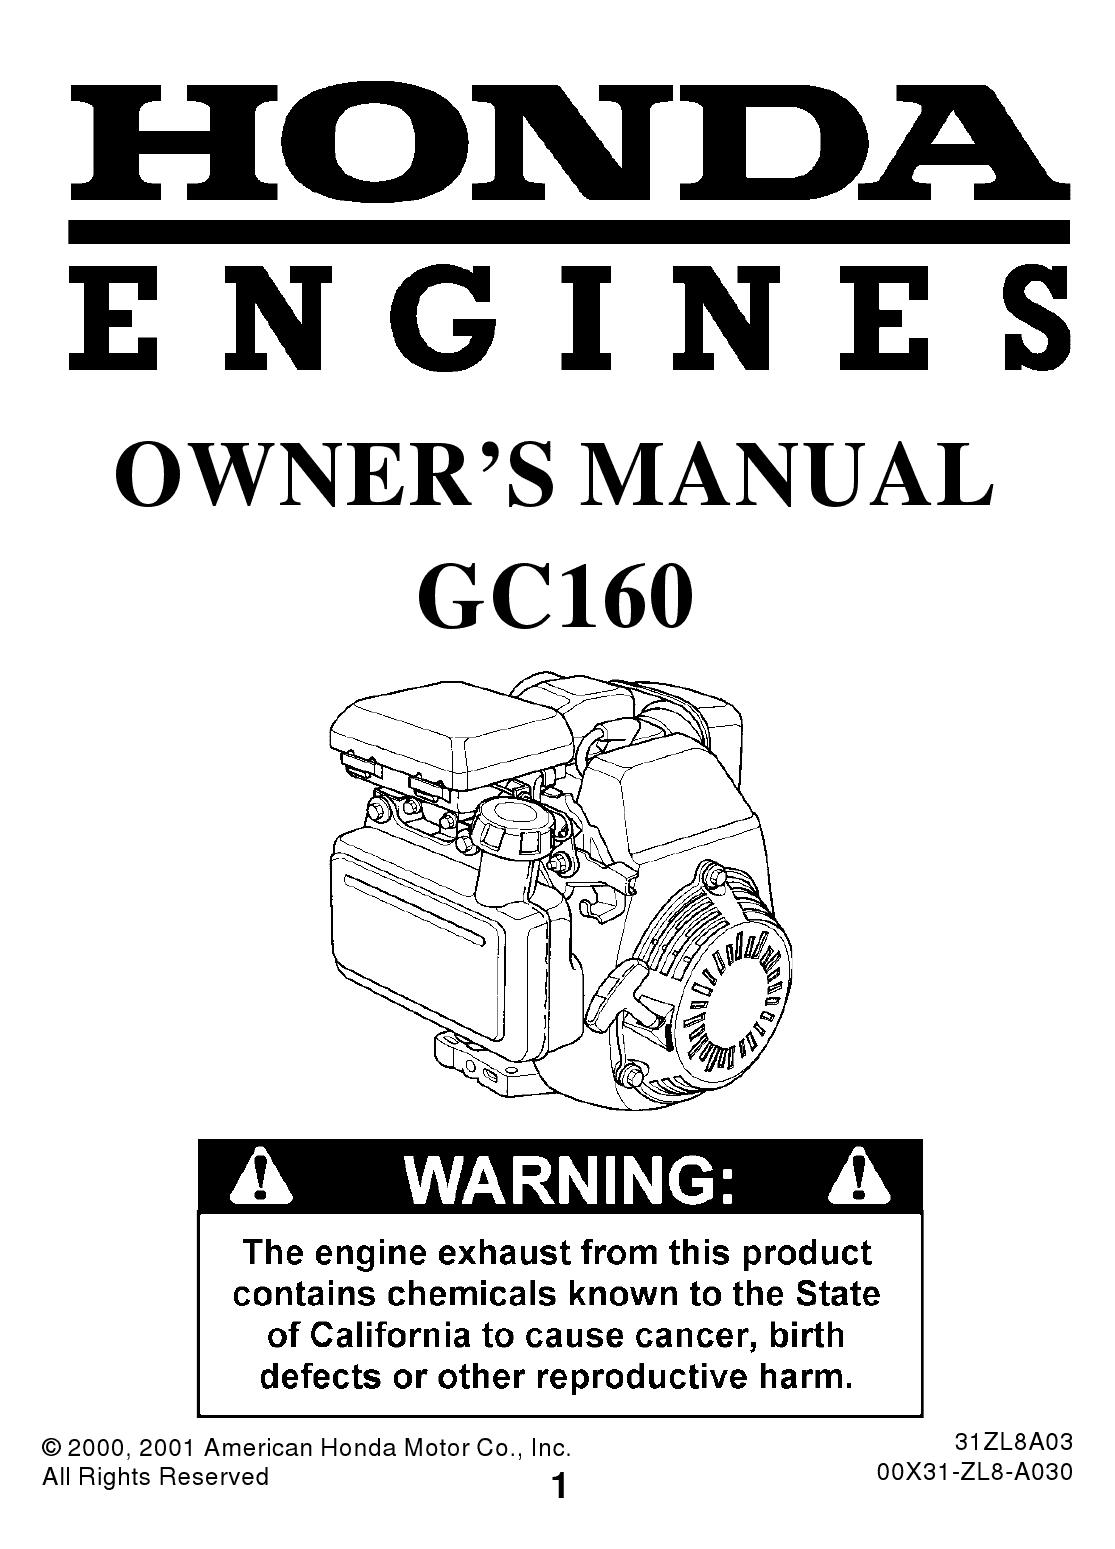 Freeownersmanual 2011 Citroen Unique Voltage Regulator Circuit Diagram By John Titus 3 Introduction Thank You For Purchasing A Honda Engine We Want To Help Get The Best Results From Your New And Operate It Safely